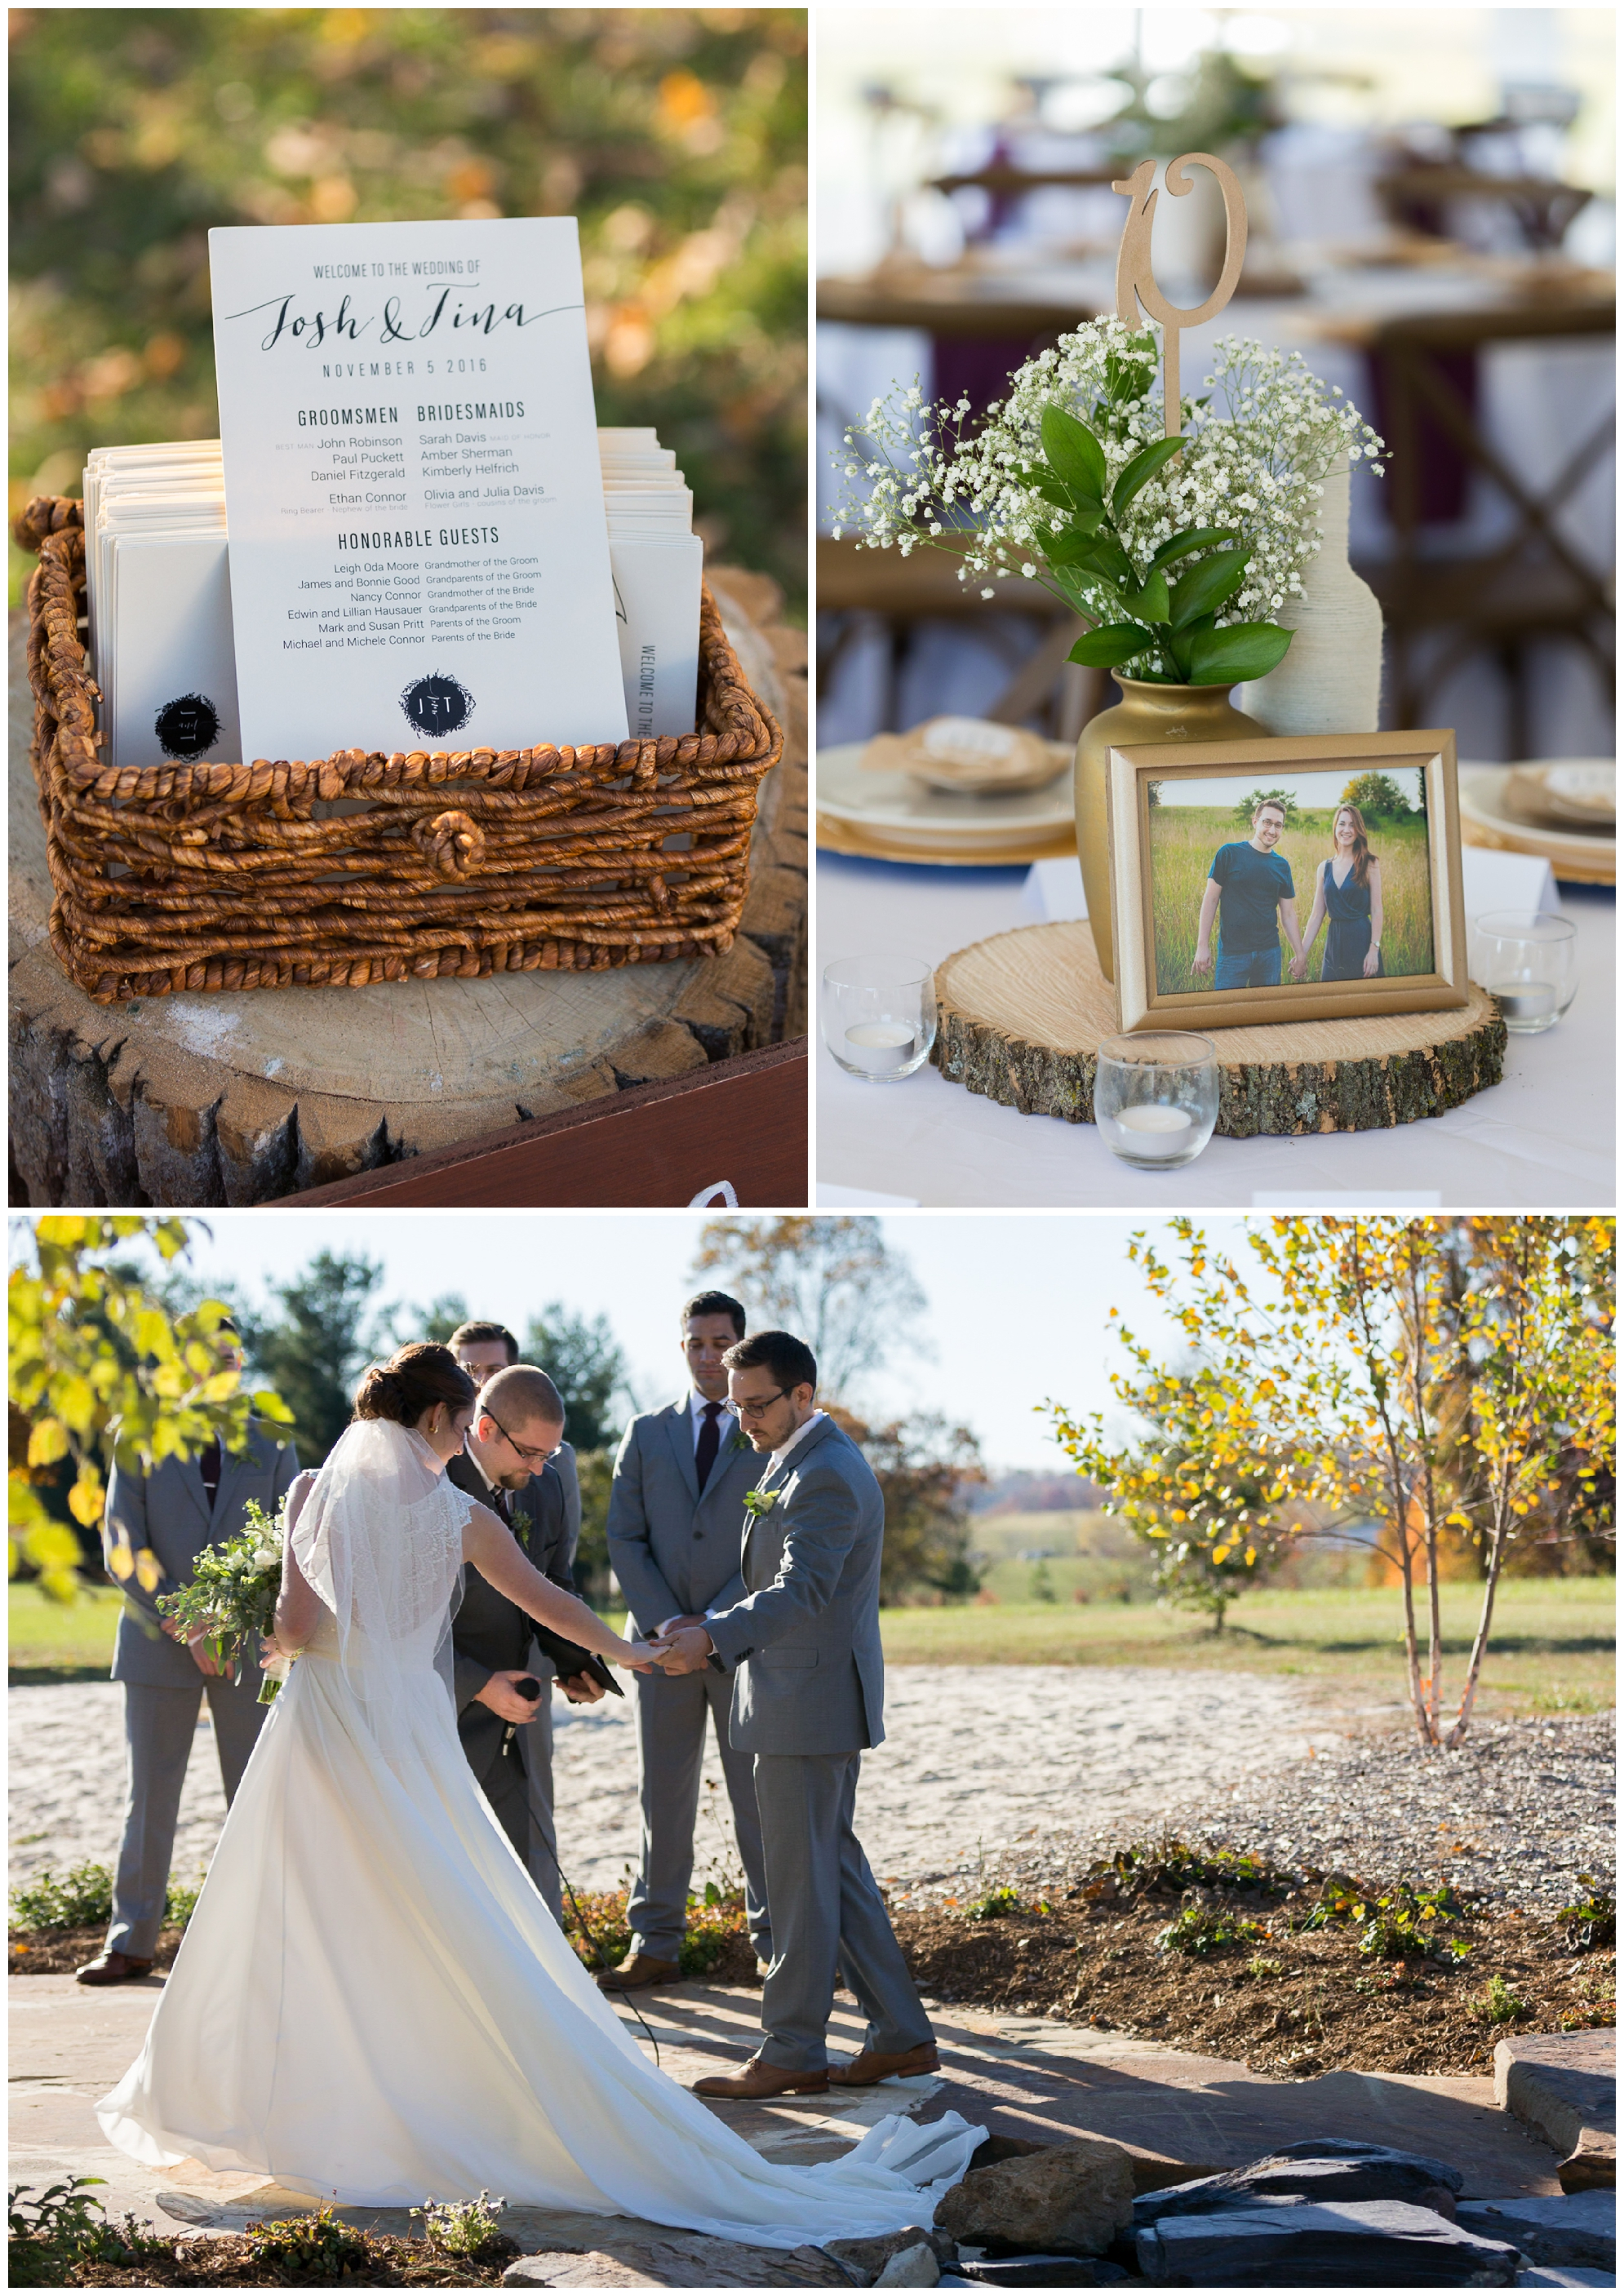 Fall wedding at Glen Ellen Farm featuring a beautiful golden and wine tones, an outdoor cocktail hour, and stunning florals